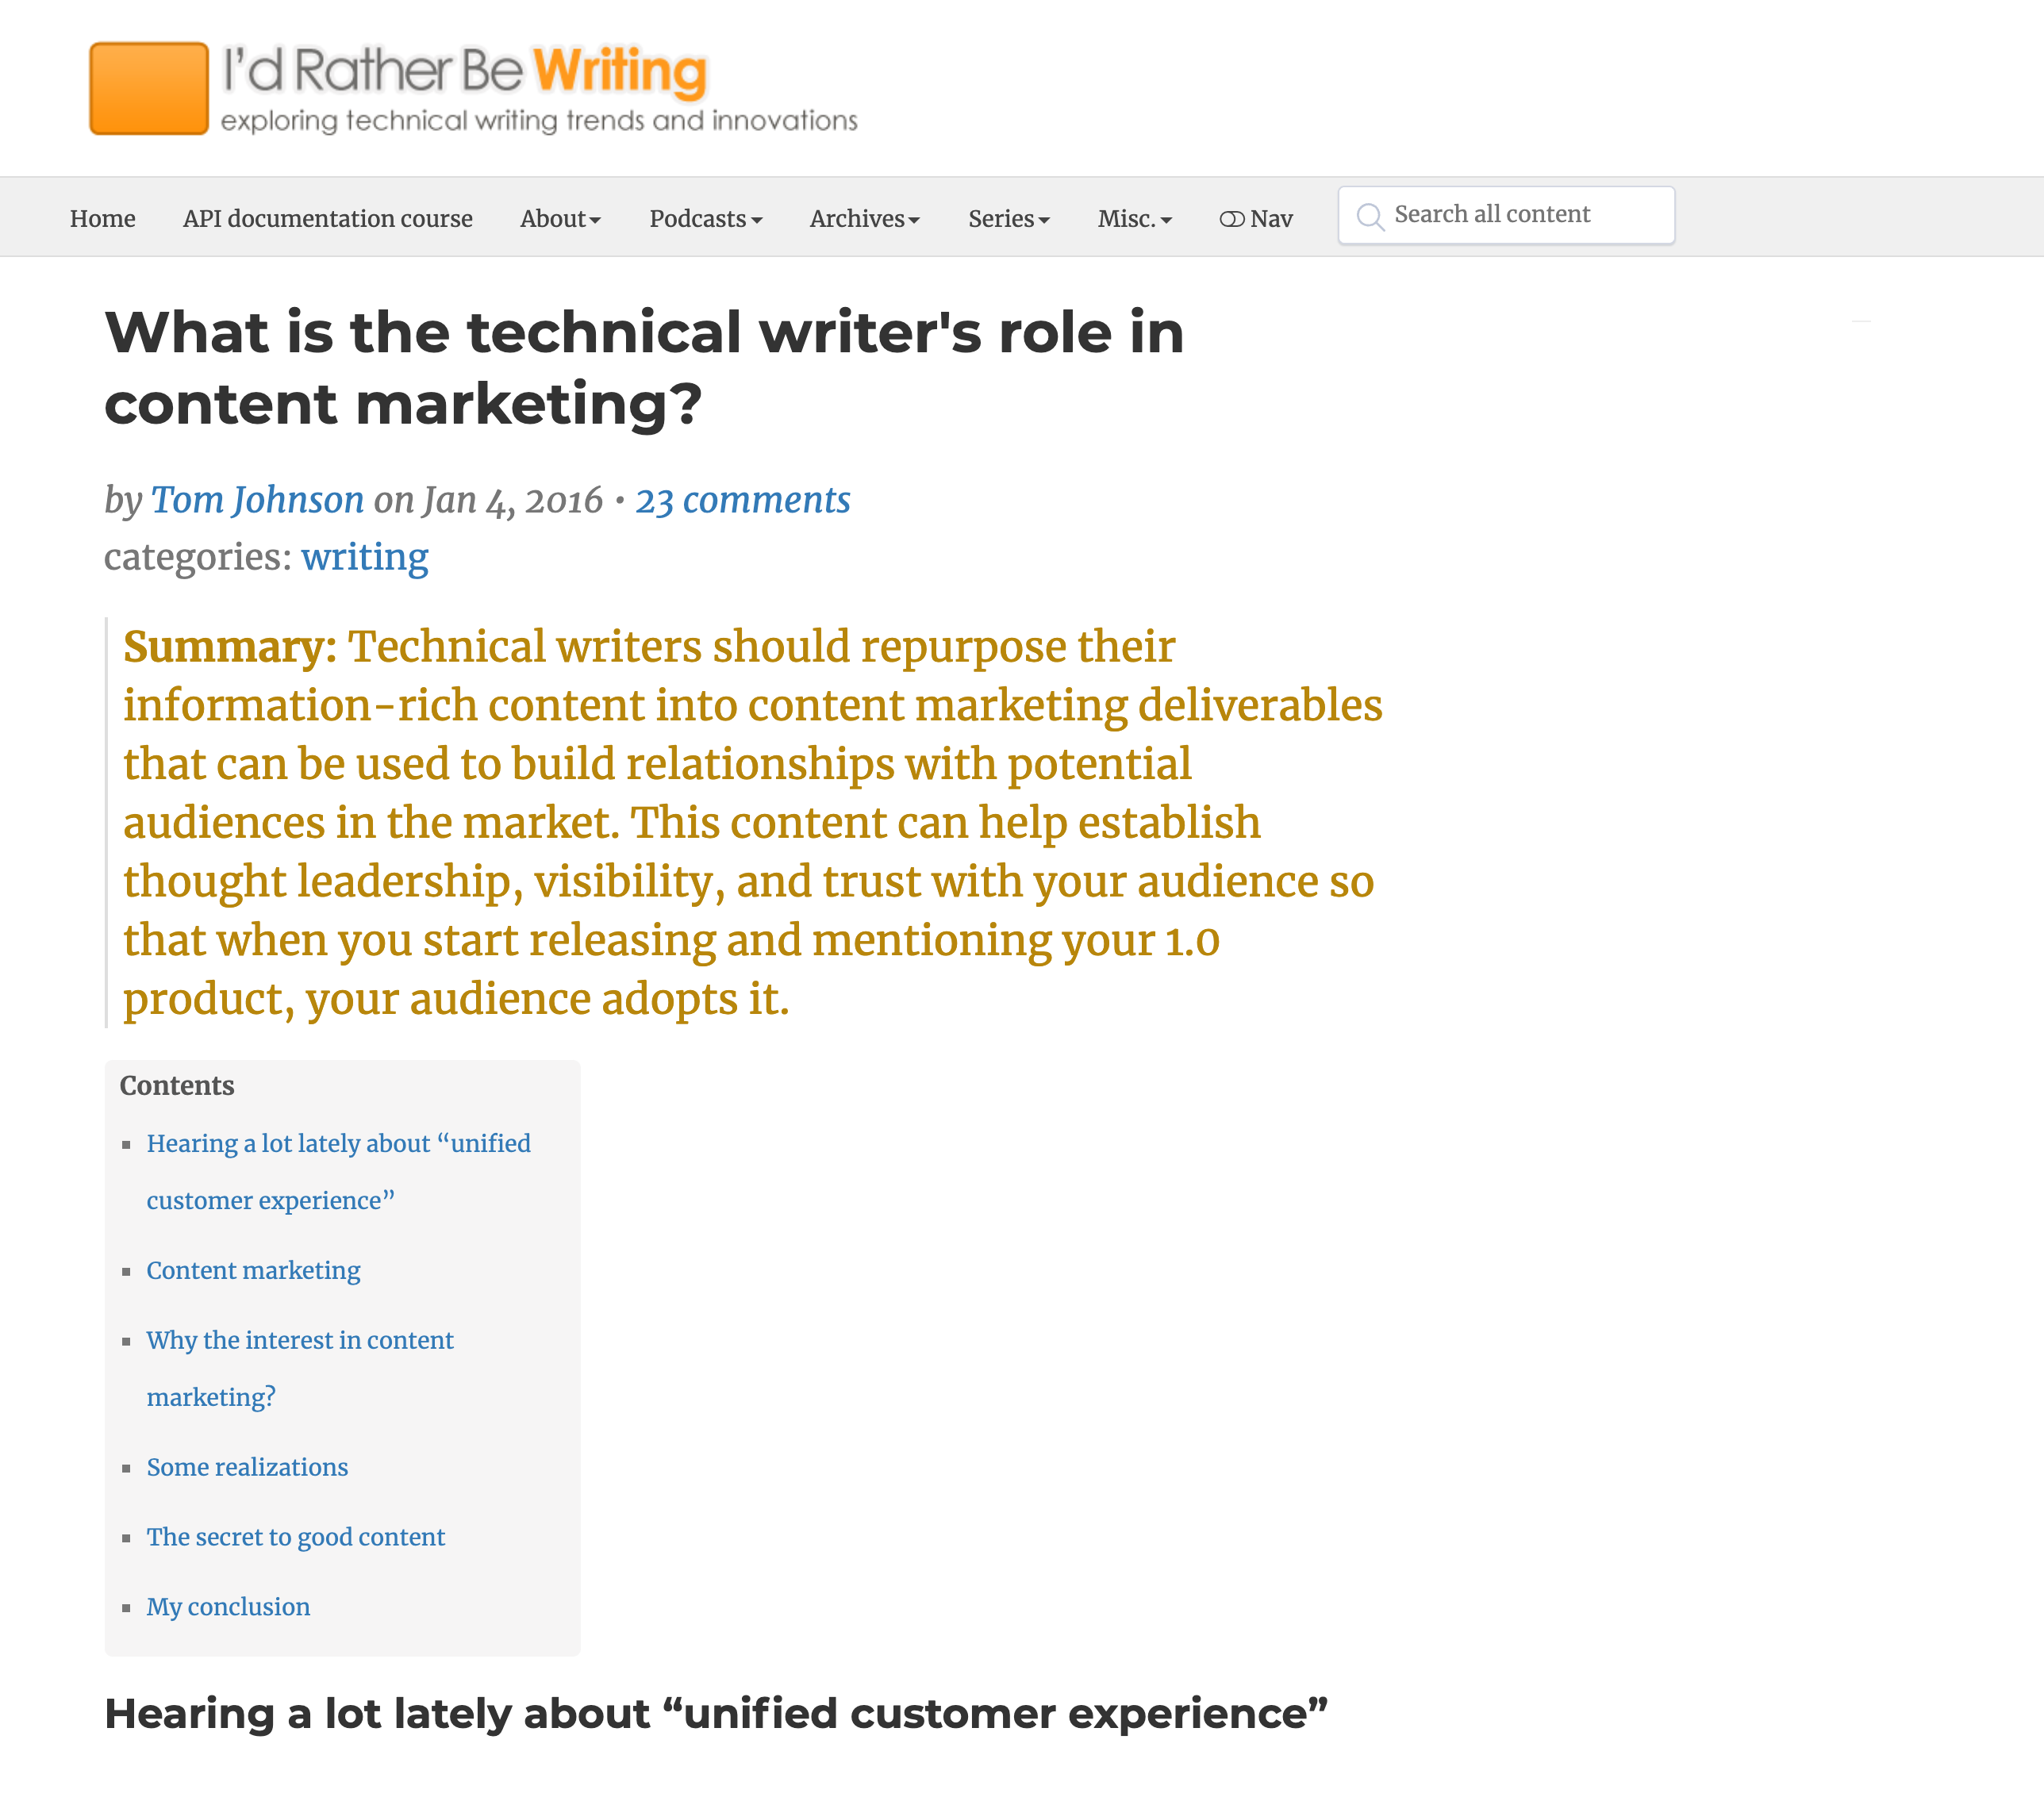 What is the technical writer's role in content marketing?